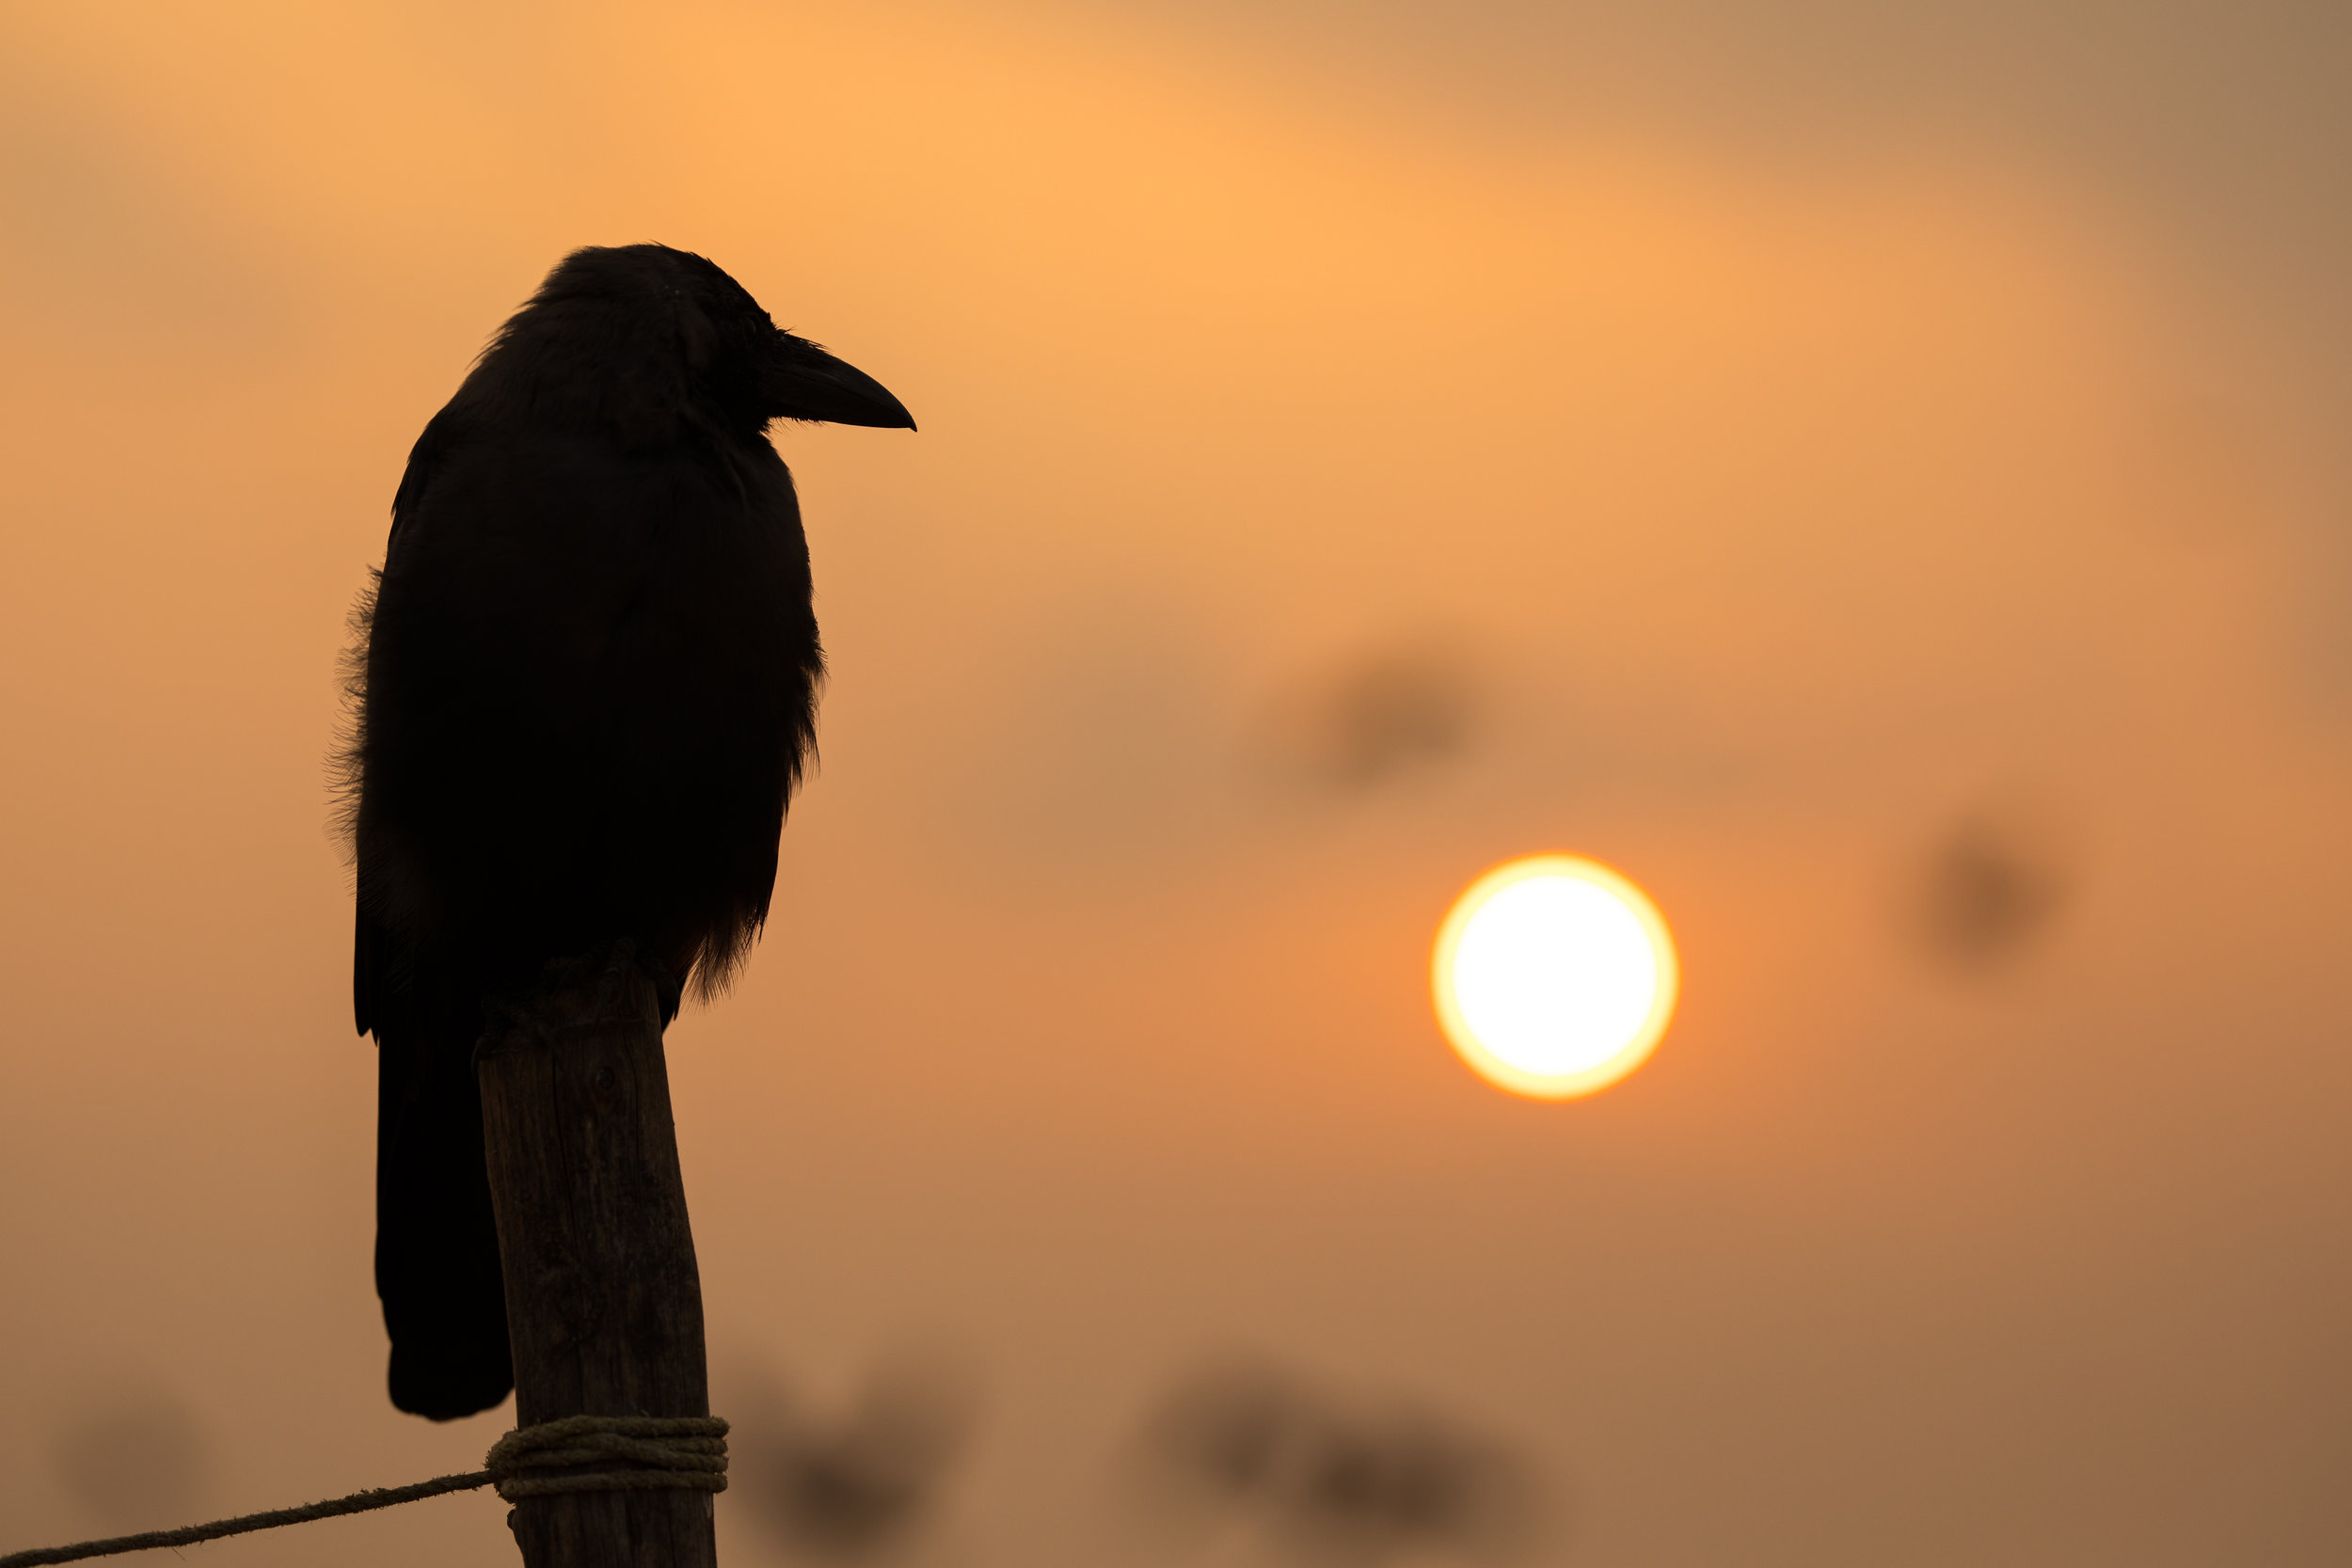 A silhouette of a bird against a golden sky at sunrise in India.